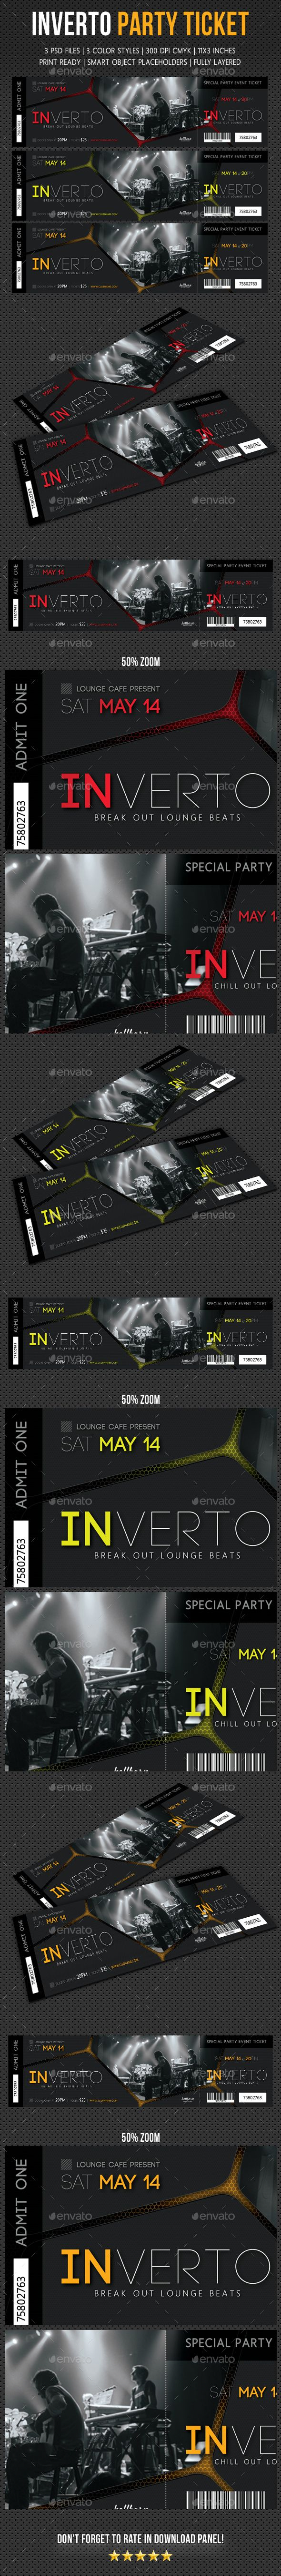 Inverto Party Event Ticket Design Template V3 - Cards & Invites Print Templates PSD. Download here: https://graphicriver.net/item/inverto-party-event-ticket-v3/19287623?ref=yinkira